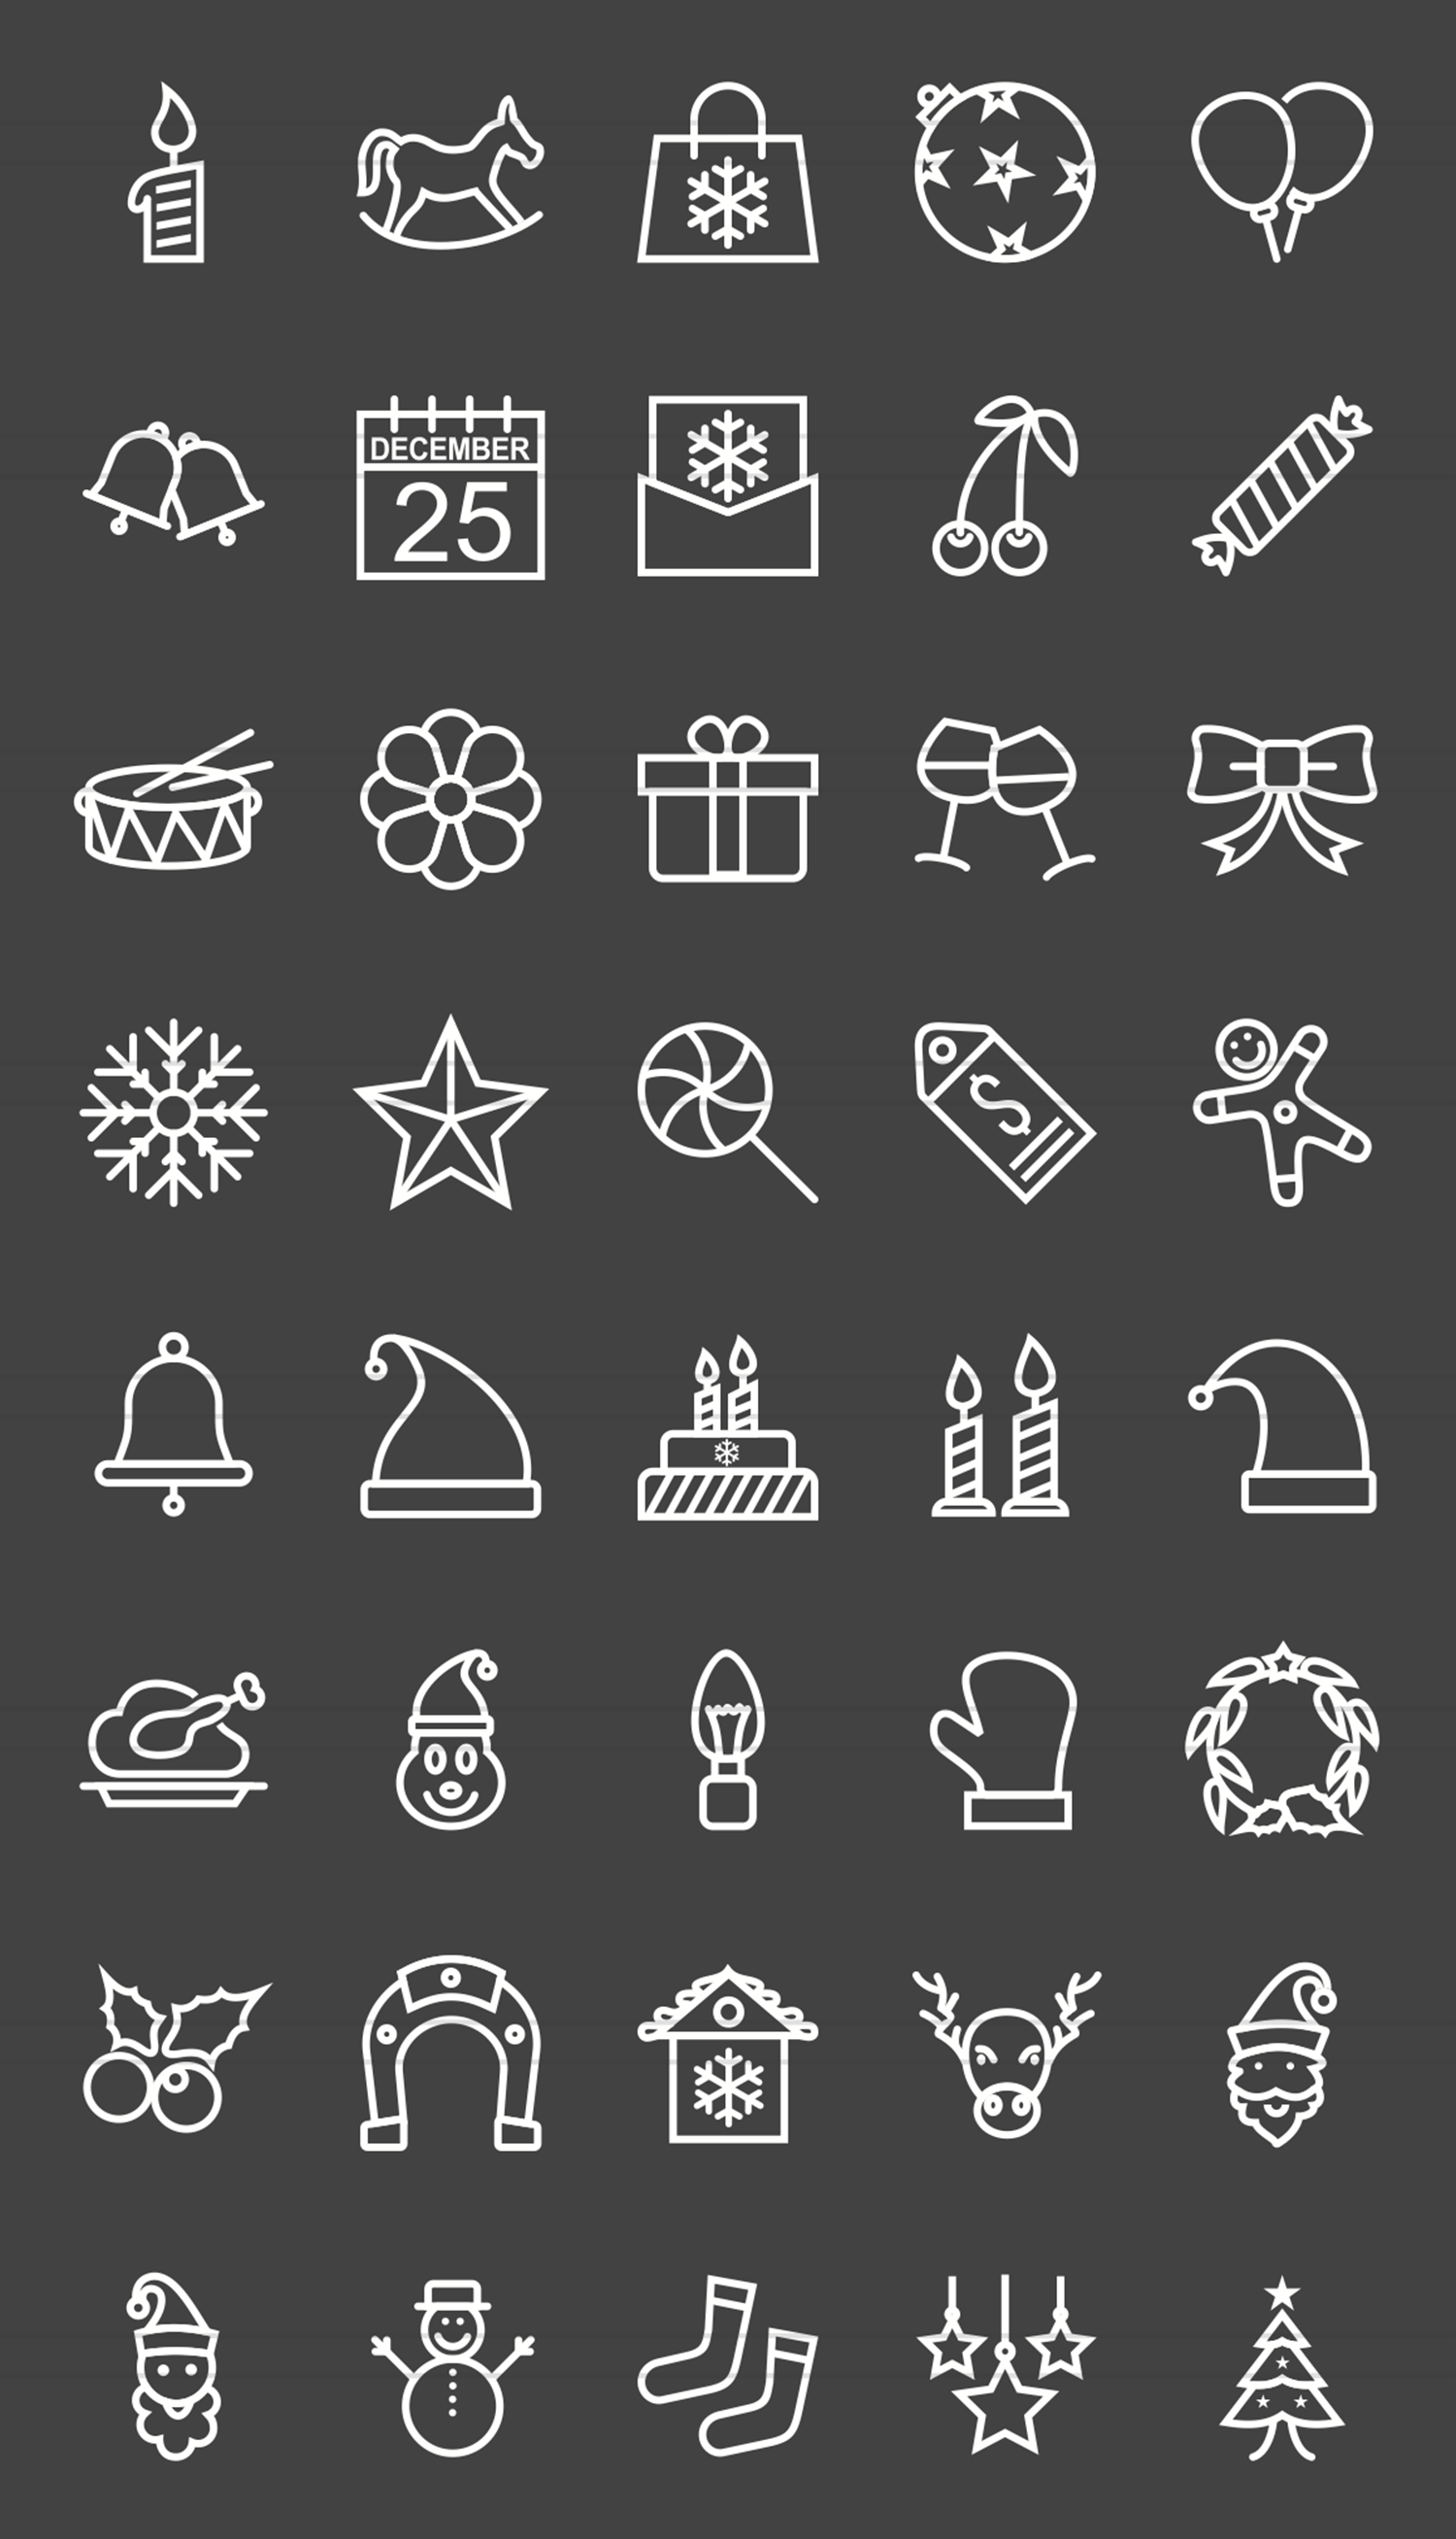 40 Christmas Line Inverted Icons example image 2